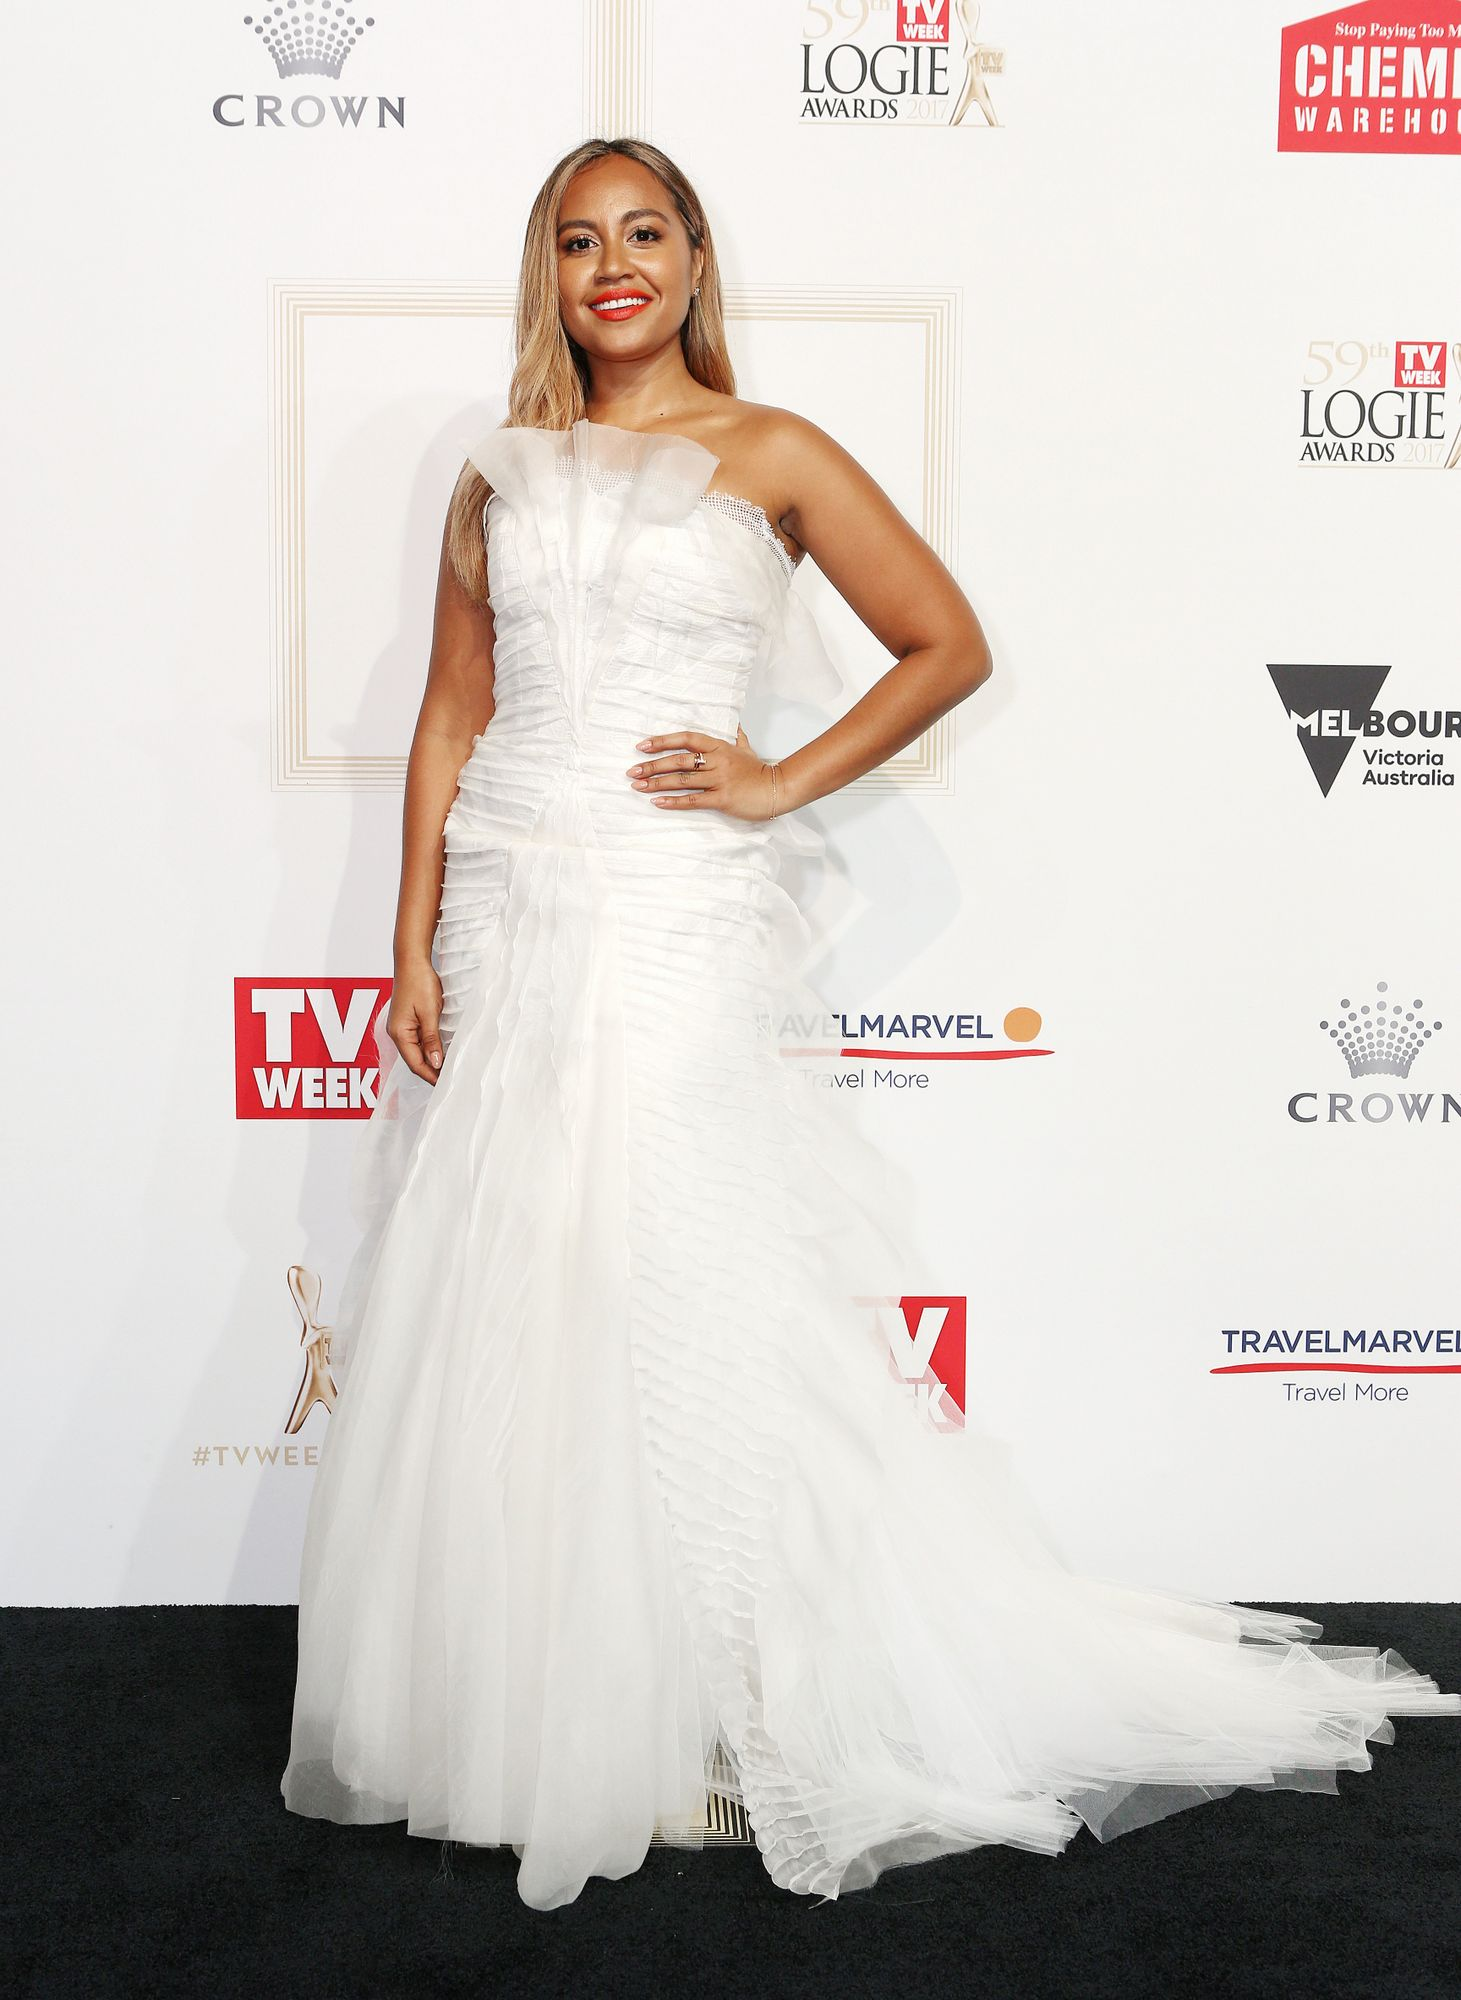 Jess Mauboy, pictured at the 2017 Logies not wearing a jacket.